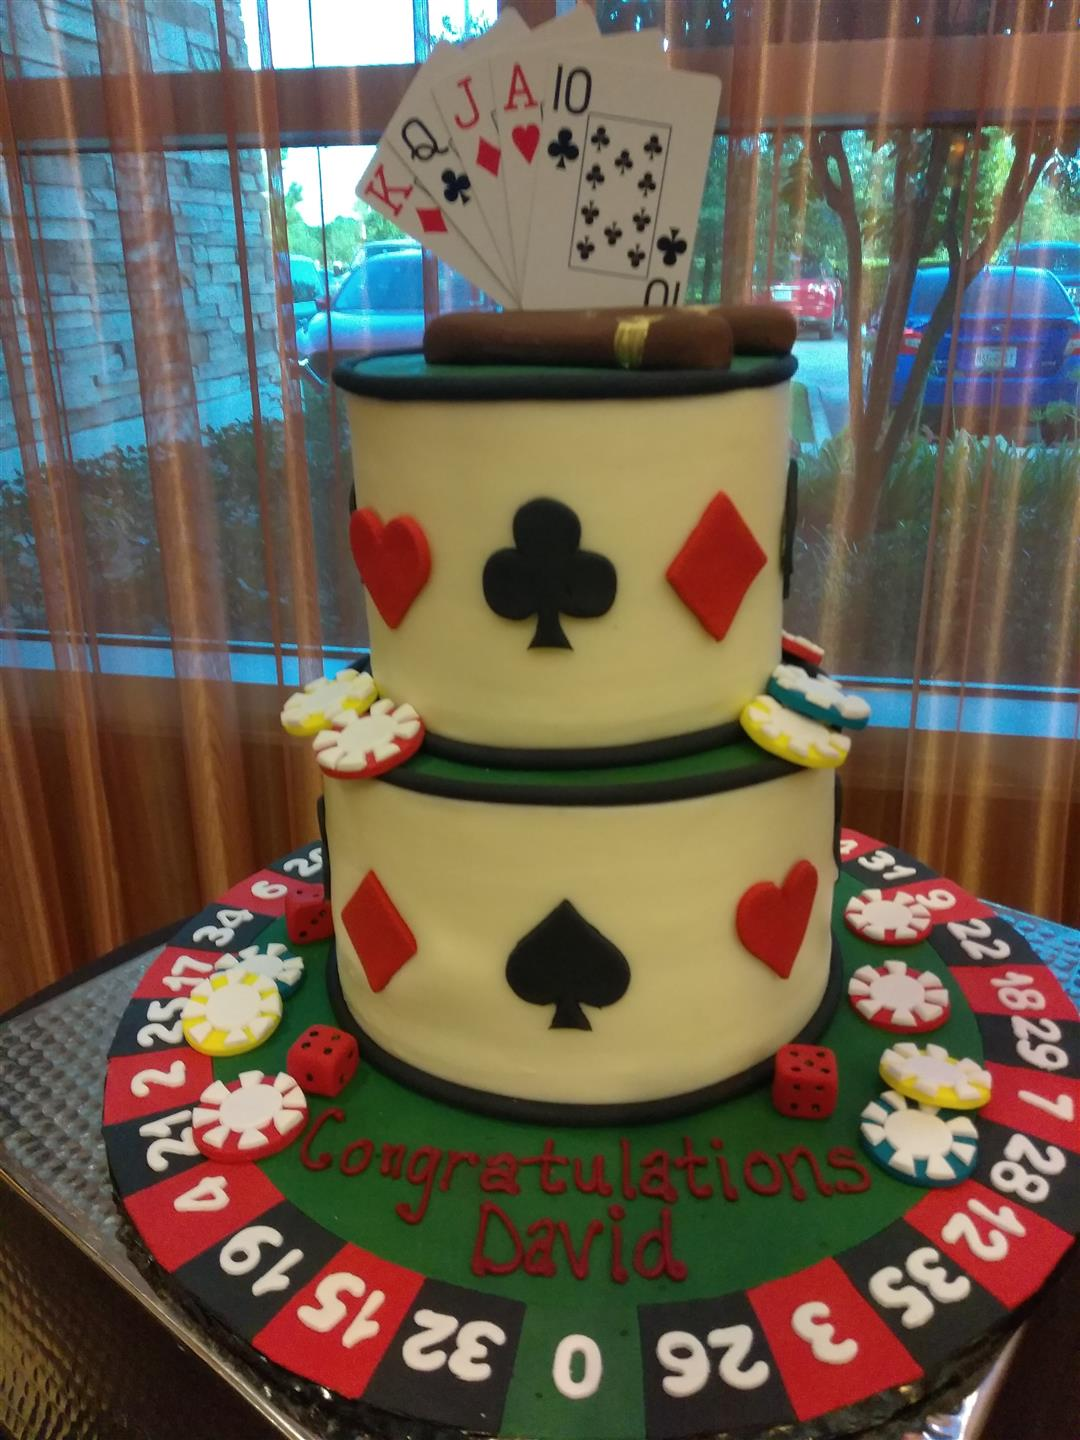 cake decorated for a casino party with cards, cigars, poker chips, and dice